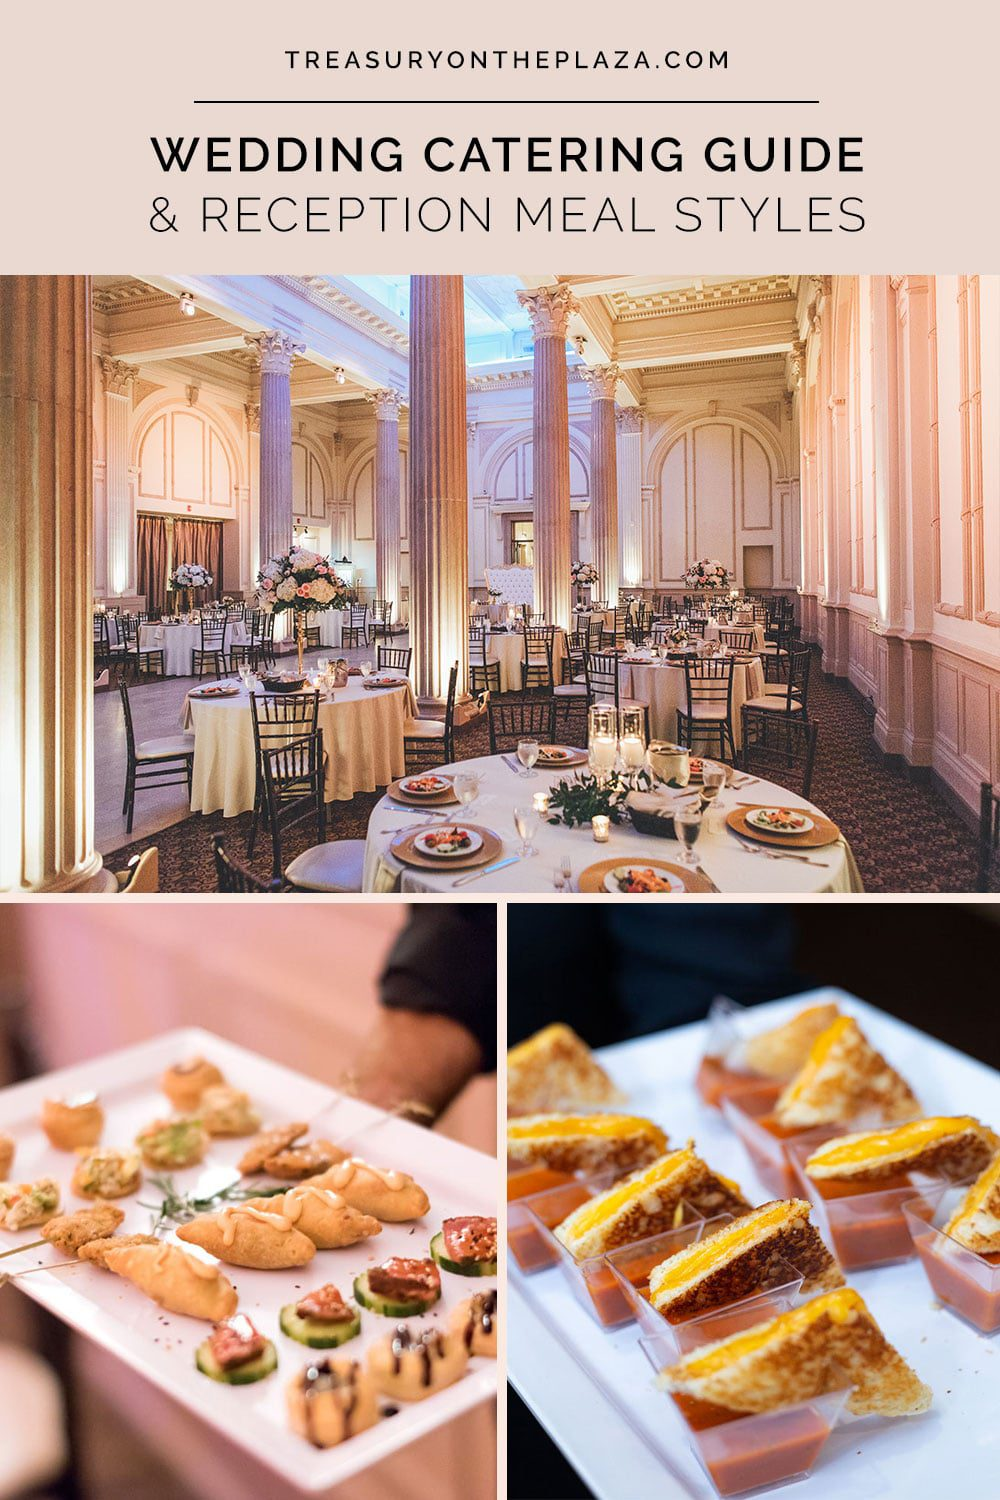 Wedding Catering Guide & Reception Meal Styles